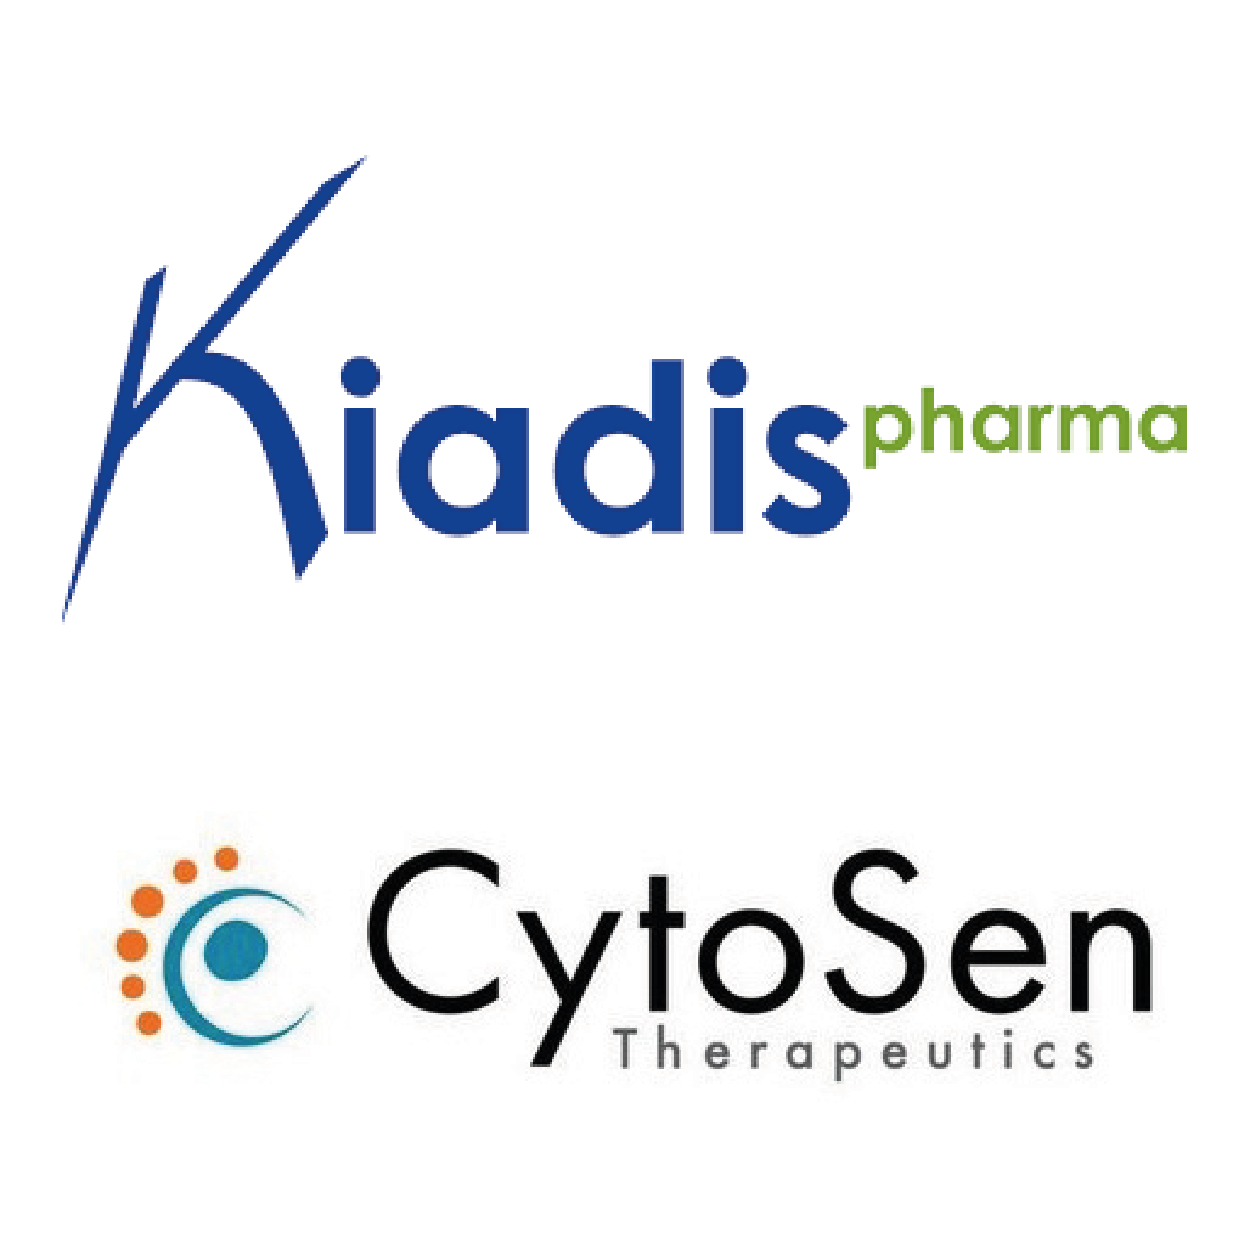 Kiadis Pharma and Cytosen Therapeutics